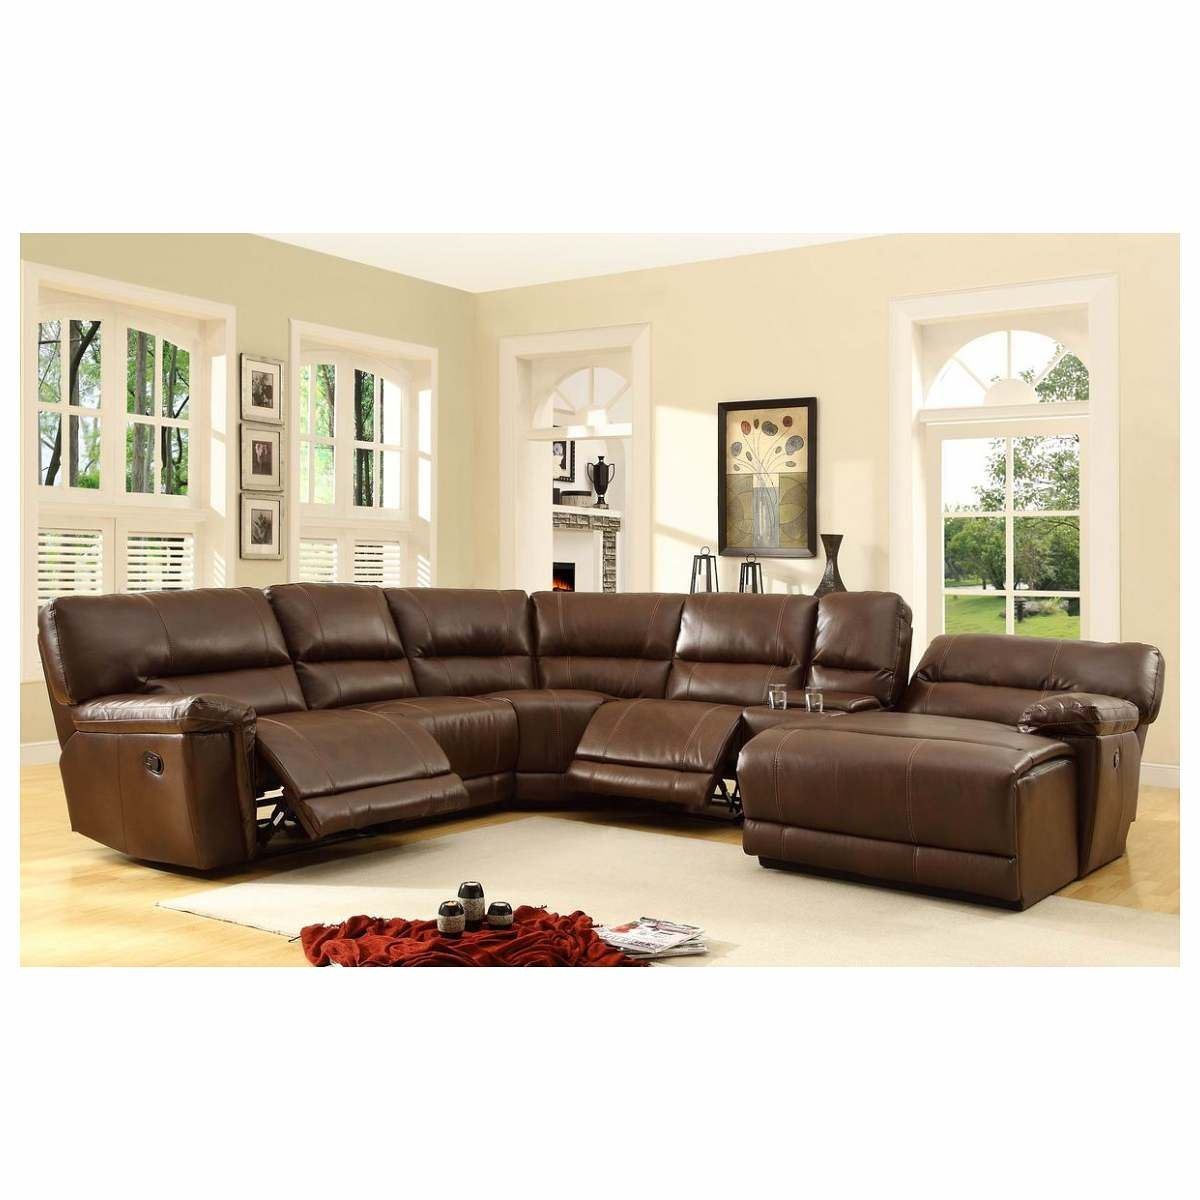 6 pc blythe collection brown bonded leather match for Sectional sofa with reclining ends